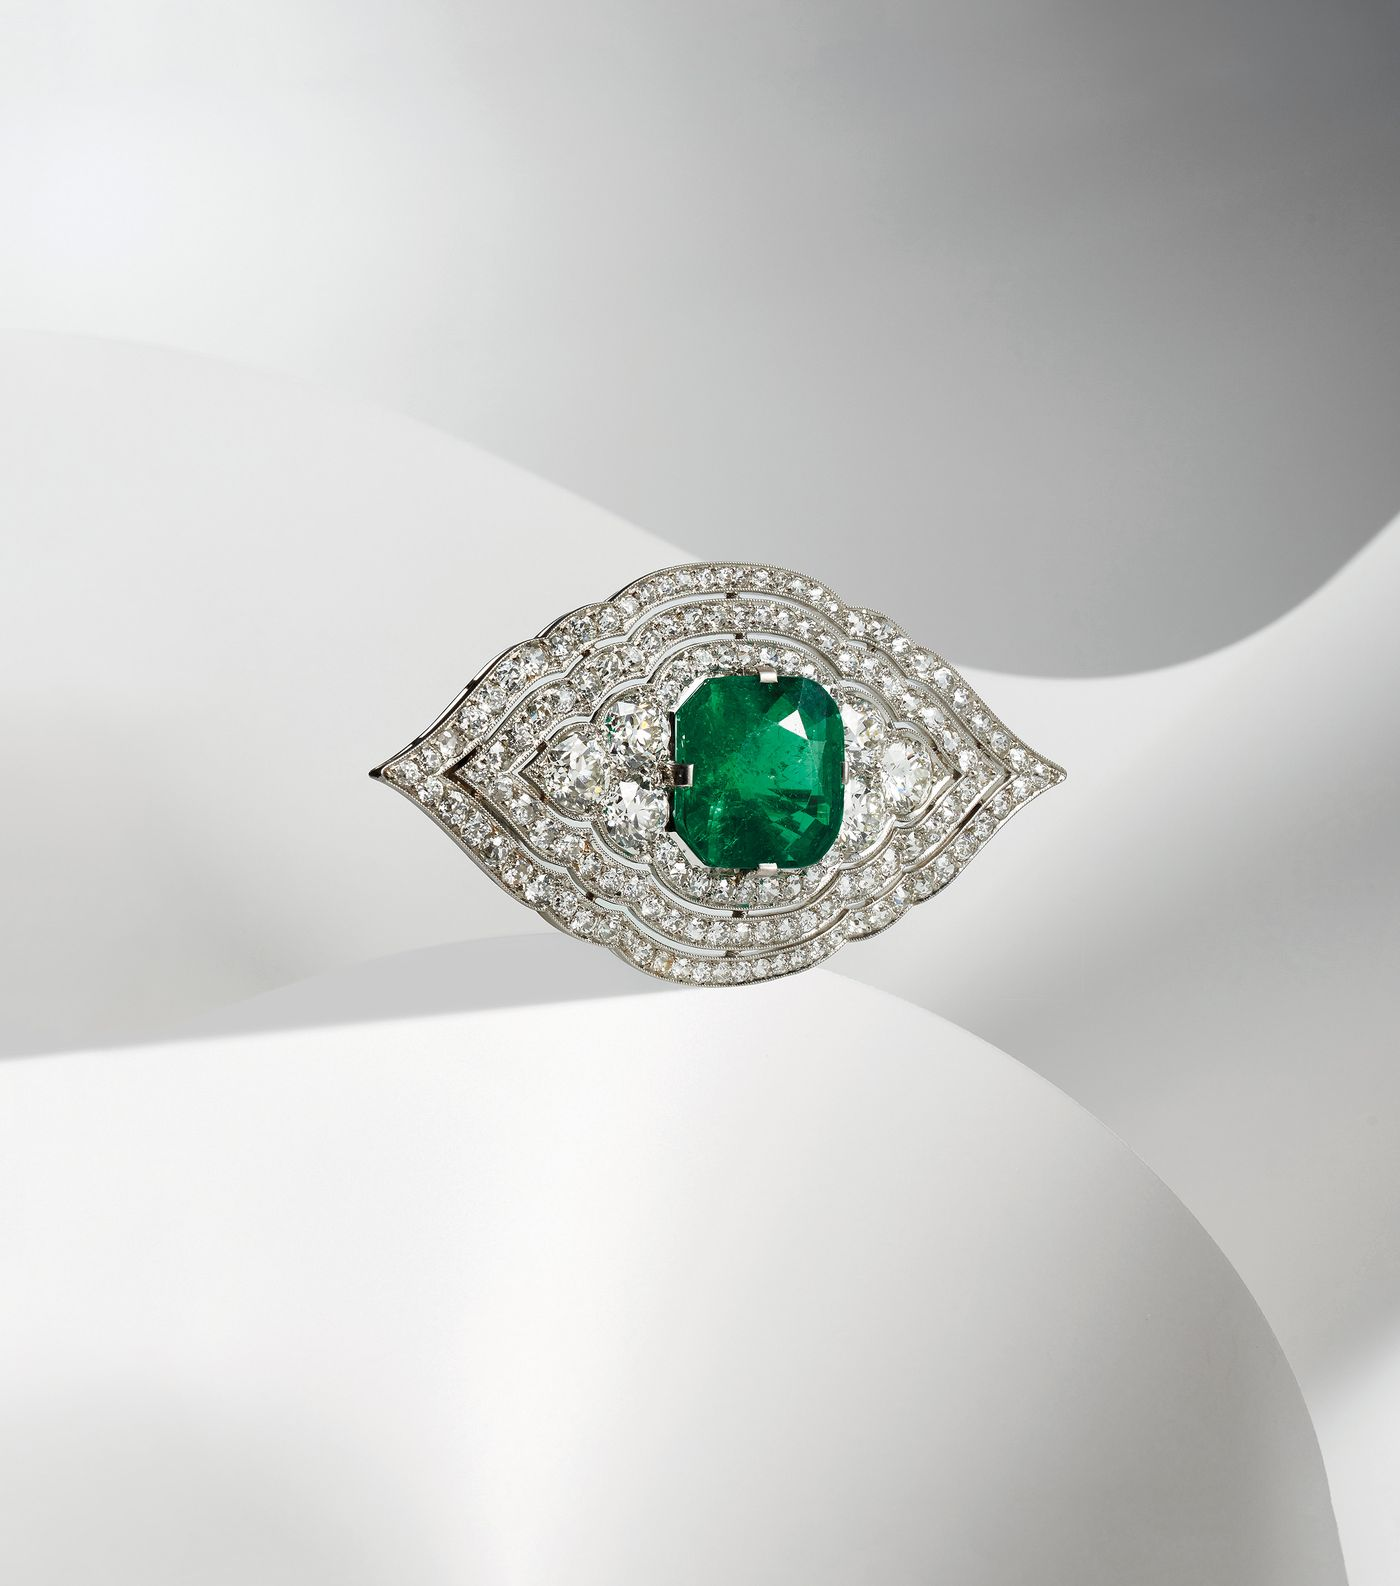 From the personal collection of a self-made New York millionaire, a Cartier emerald, diamond and platinum brooch sheds light on the jeweler's Art Deco design era. Susan Abeles, Senior International Specialist, provides an in-depth look.